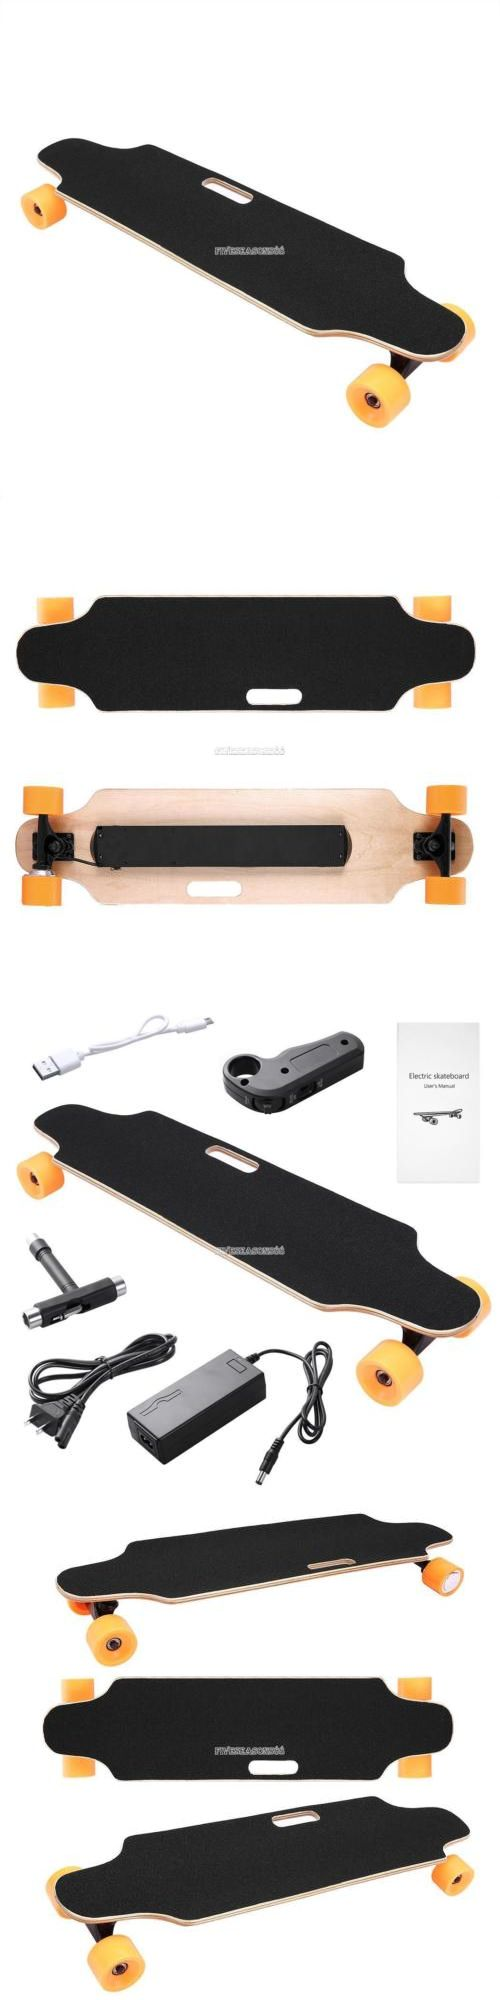 Skateboards-Complete 16264: New Lightest Electric Powered Skateboard 250W Longboard+Remote Control Black -> BUY IT NOW ONLY: $188.79 on eBay!